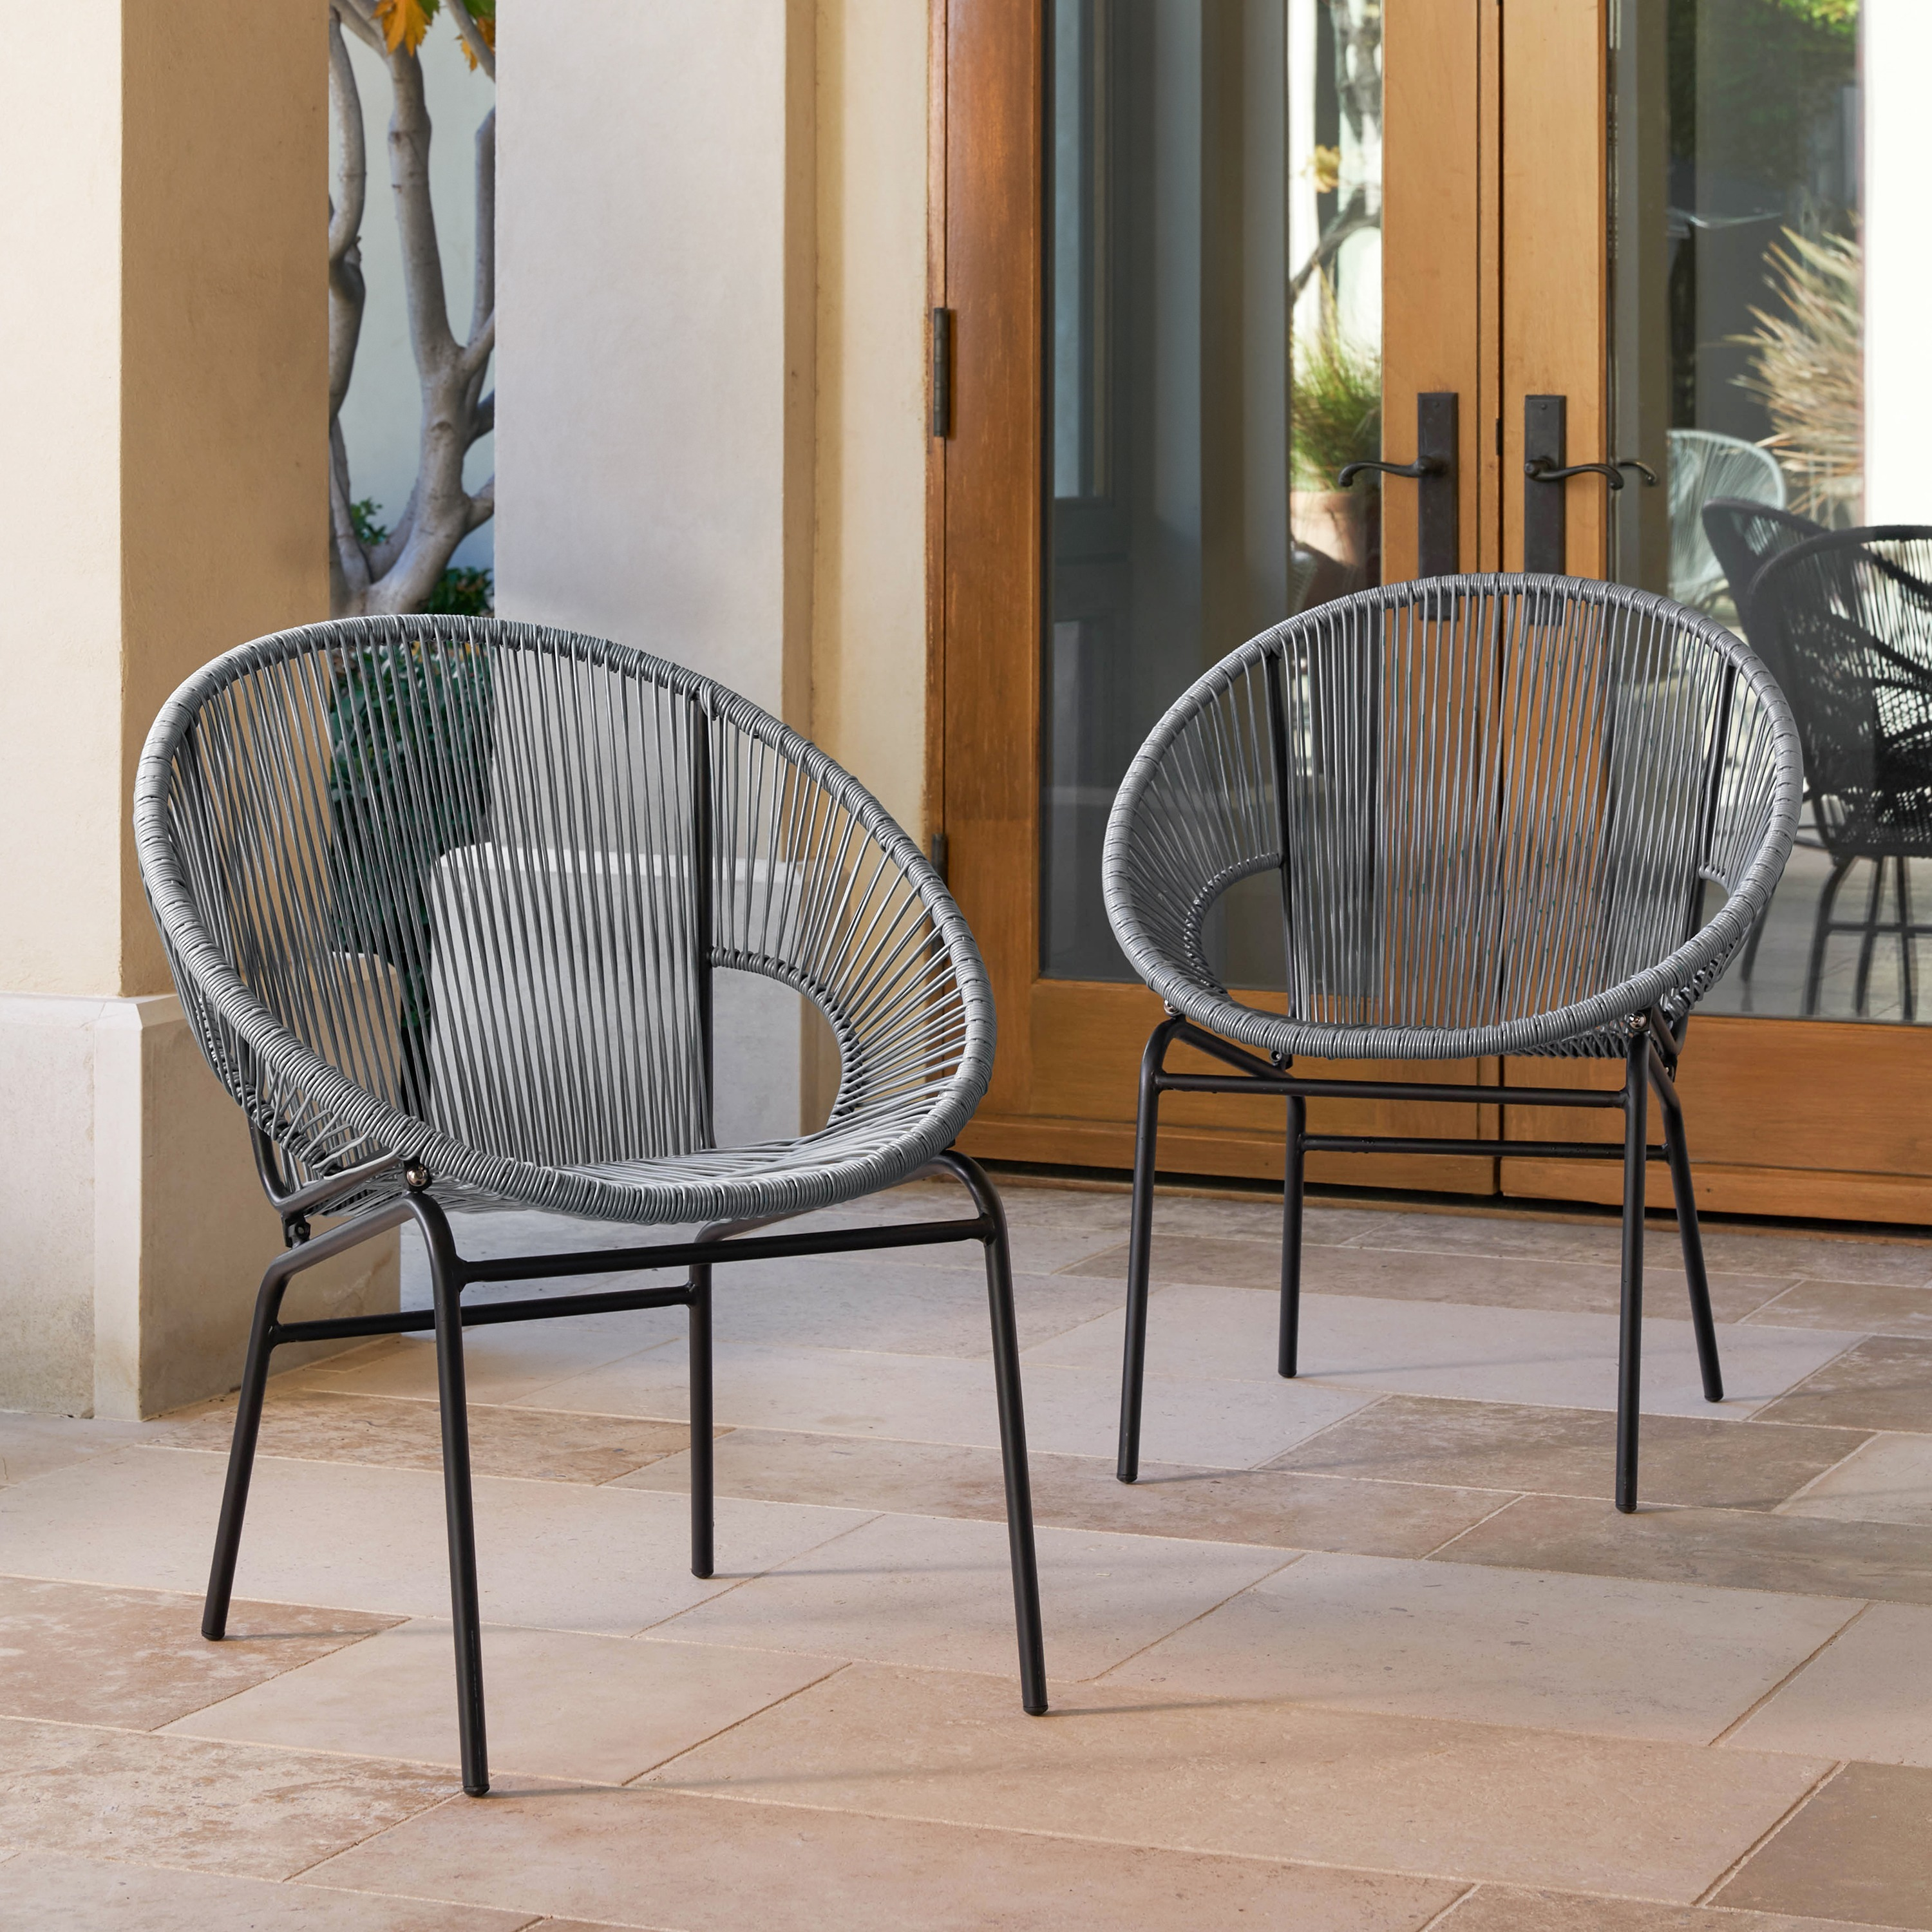 Wicker Patio Chair Corvus Sarcelles Woven Wicker Patio Chairs Set Of 2